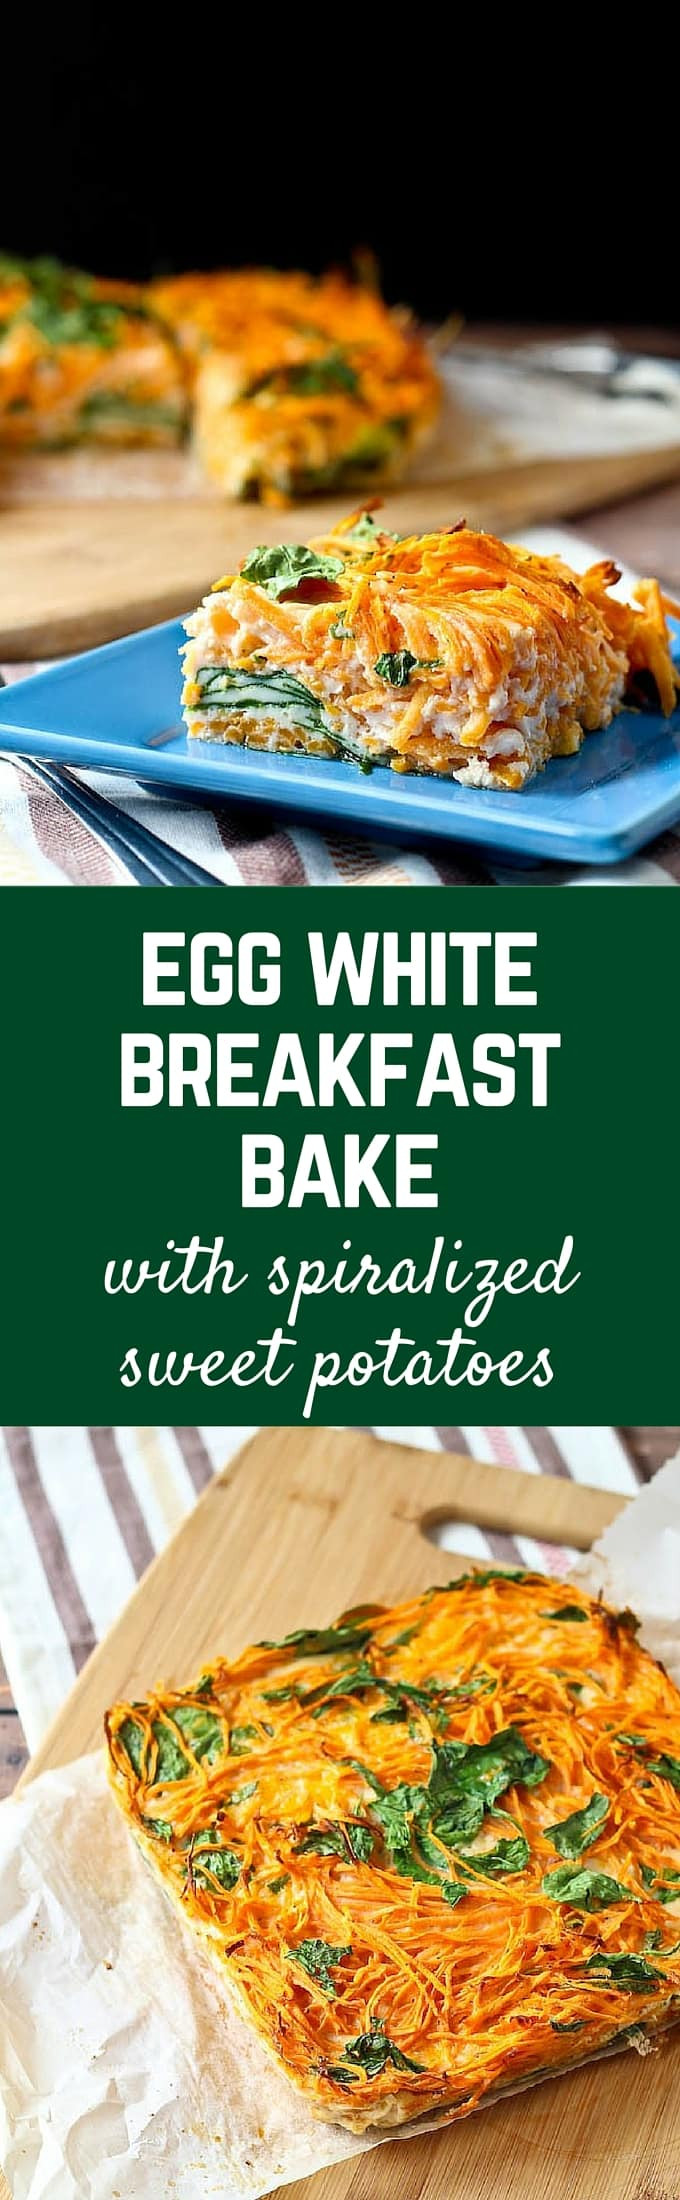 Egg Whites Breakfast Recipes  Egg White Breakfast Bake with Sweet Potato and Spinach